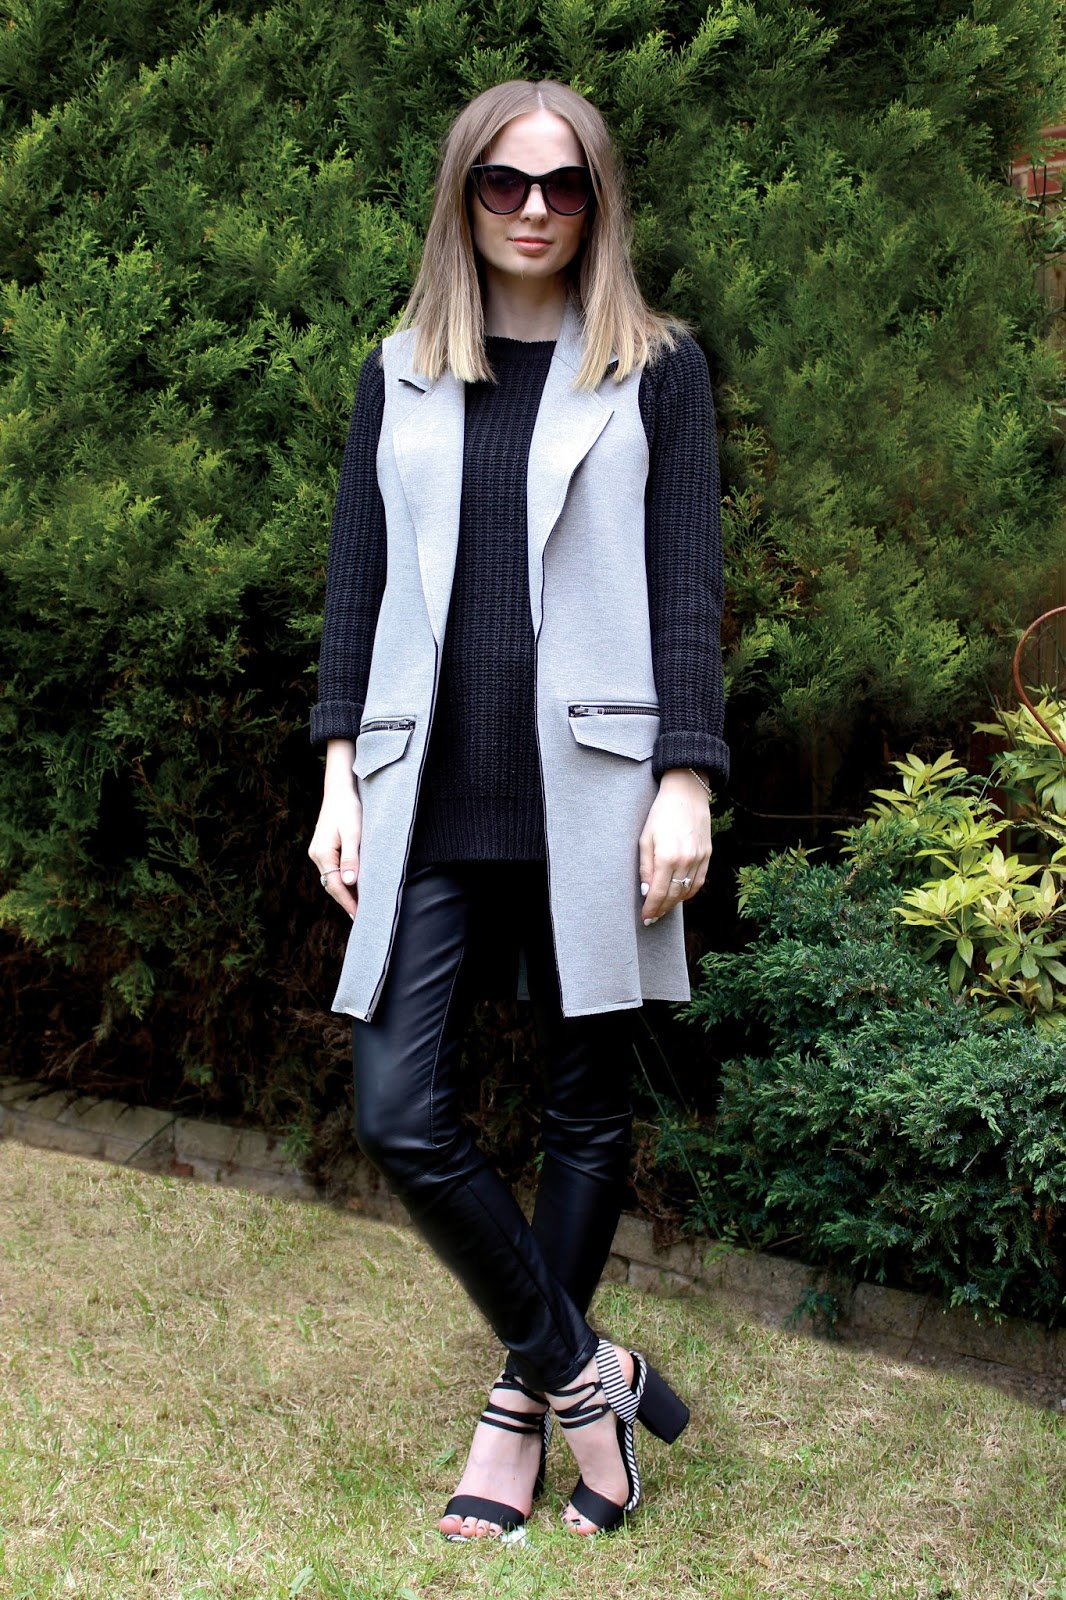 Topshop Grey Sleveless Ponte Jacket & New Look Sweeny Block Heeled Sandals